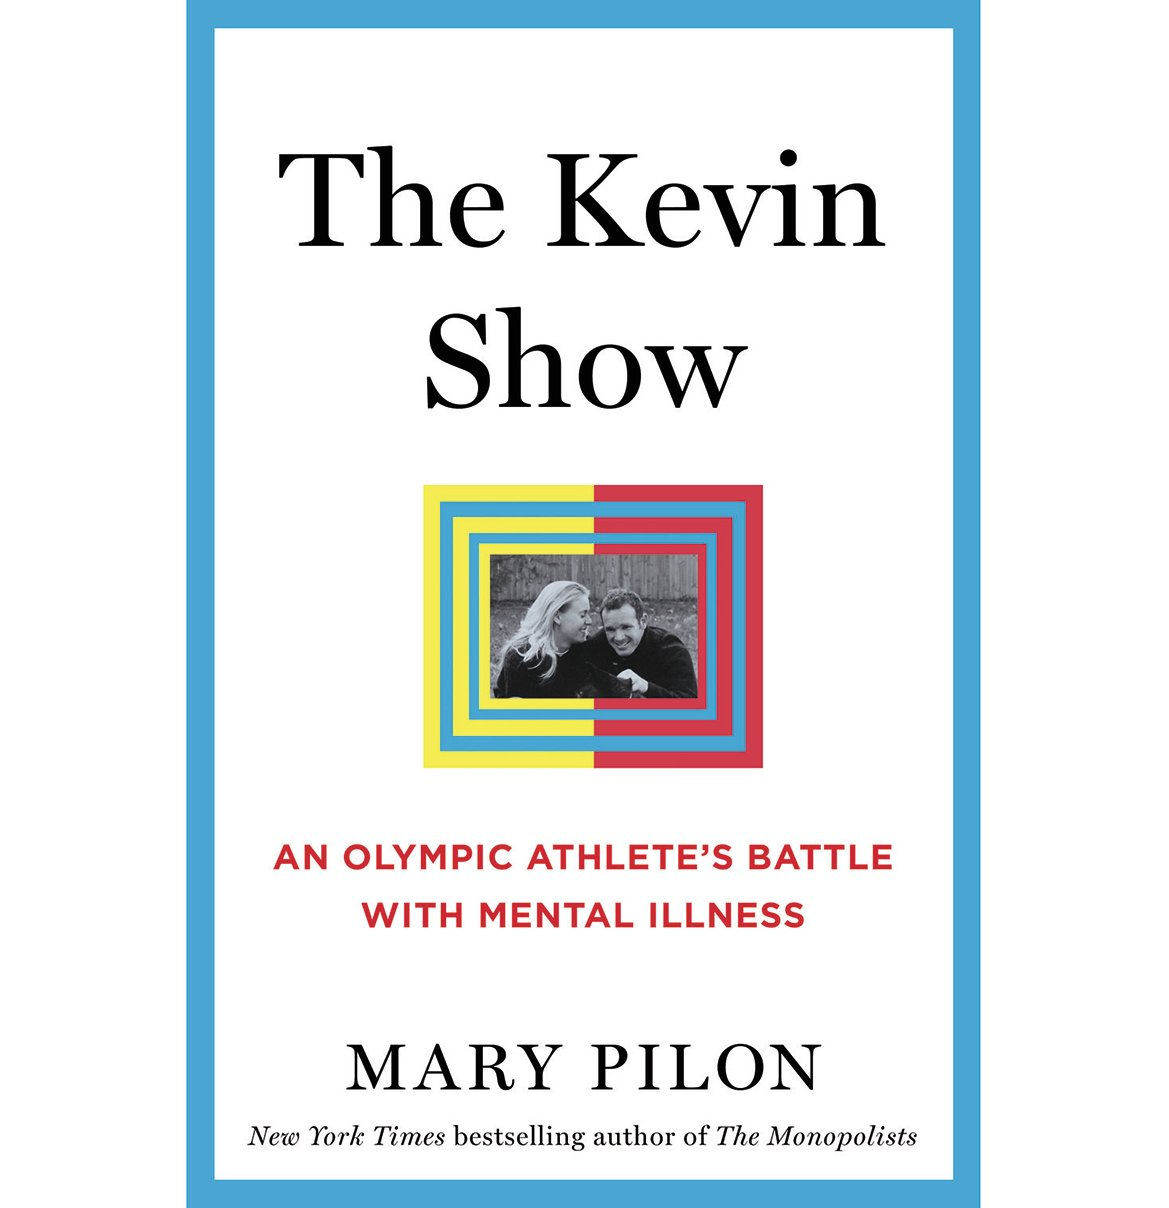 The Kevin Show, by Mary Pilon